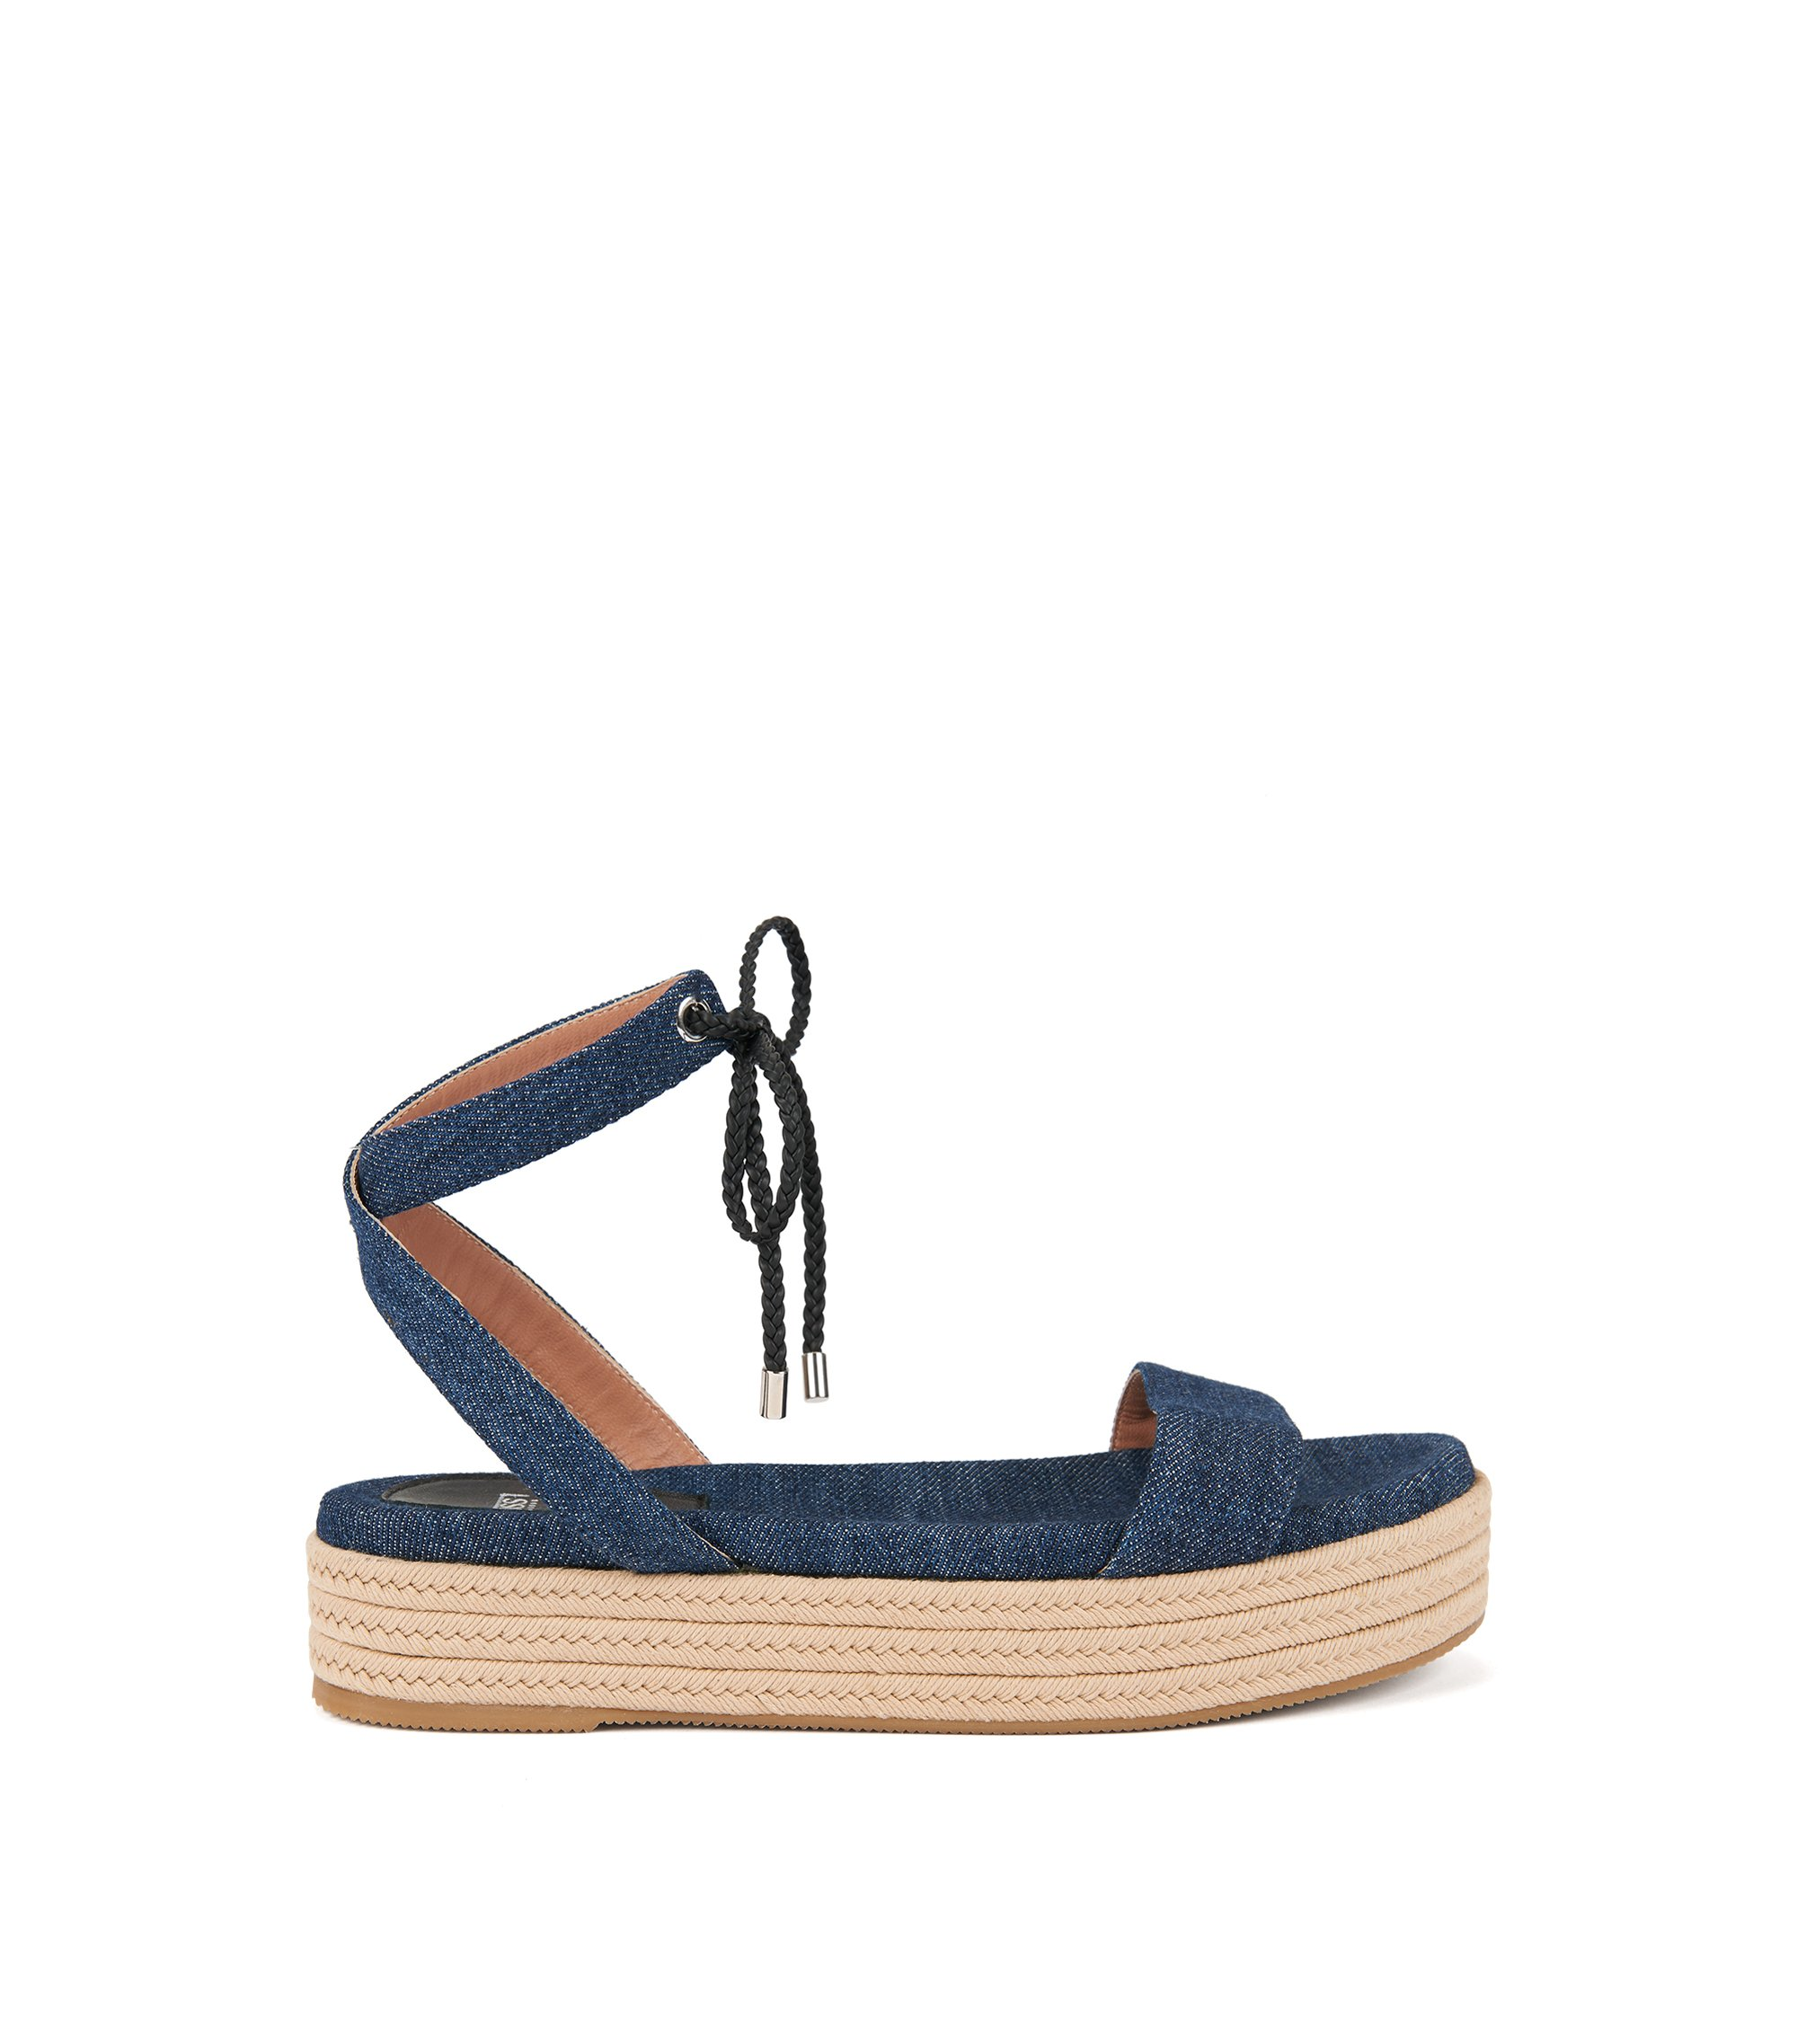 Sandali con zeppa in morbido denim, Blu